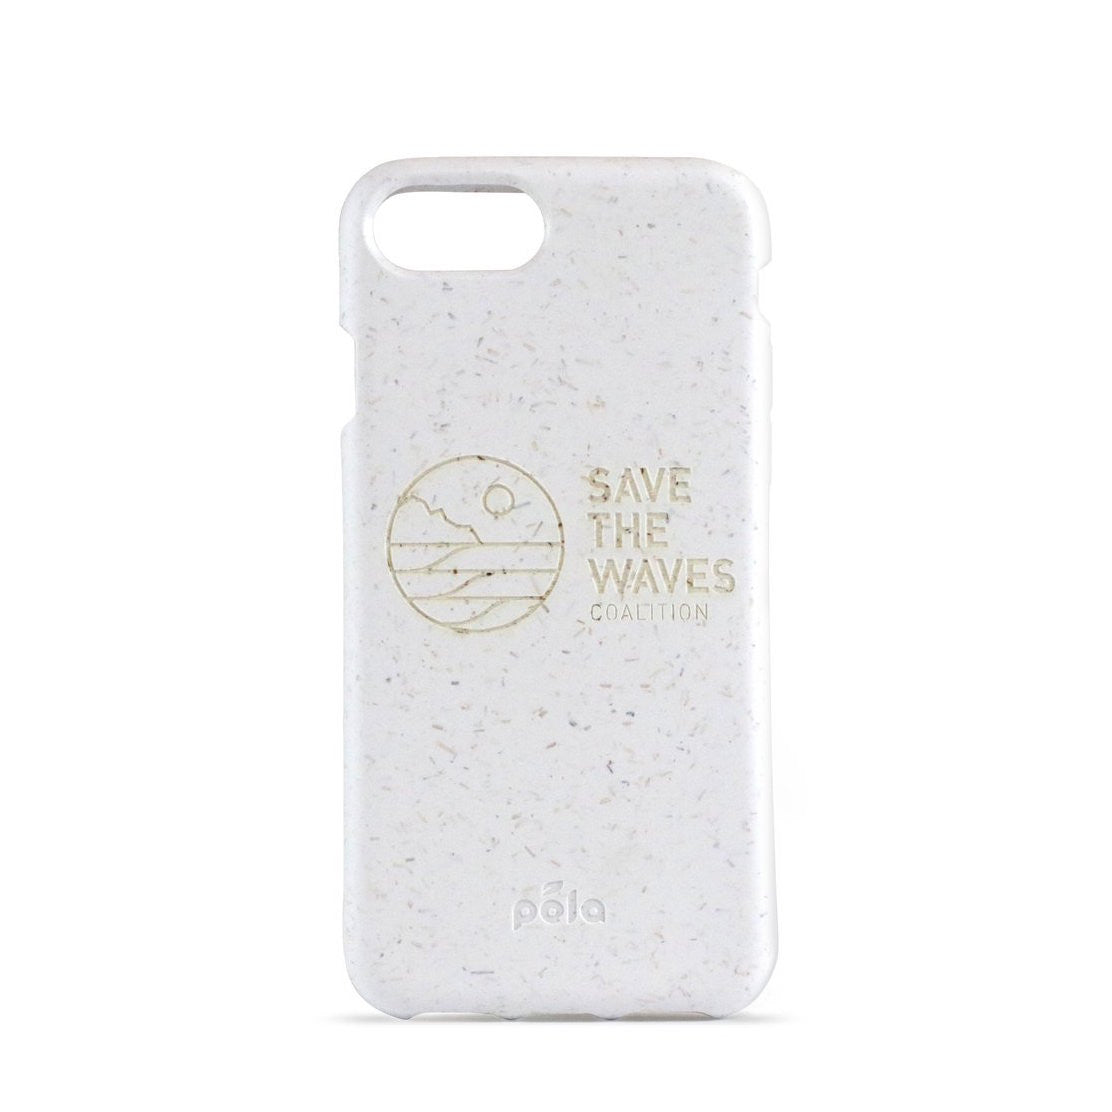 Pela Save The Waves White iPhone Pela Case